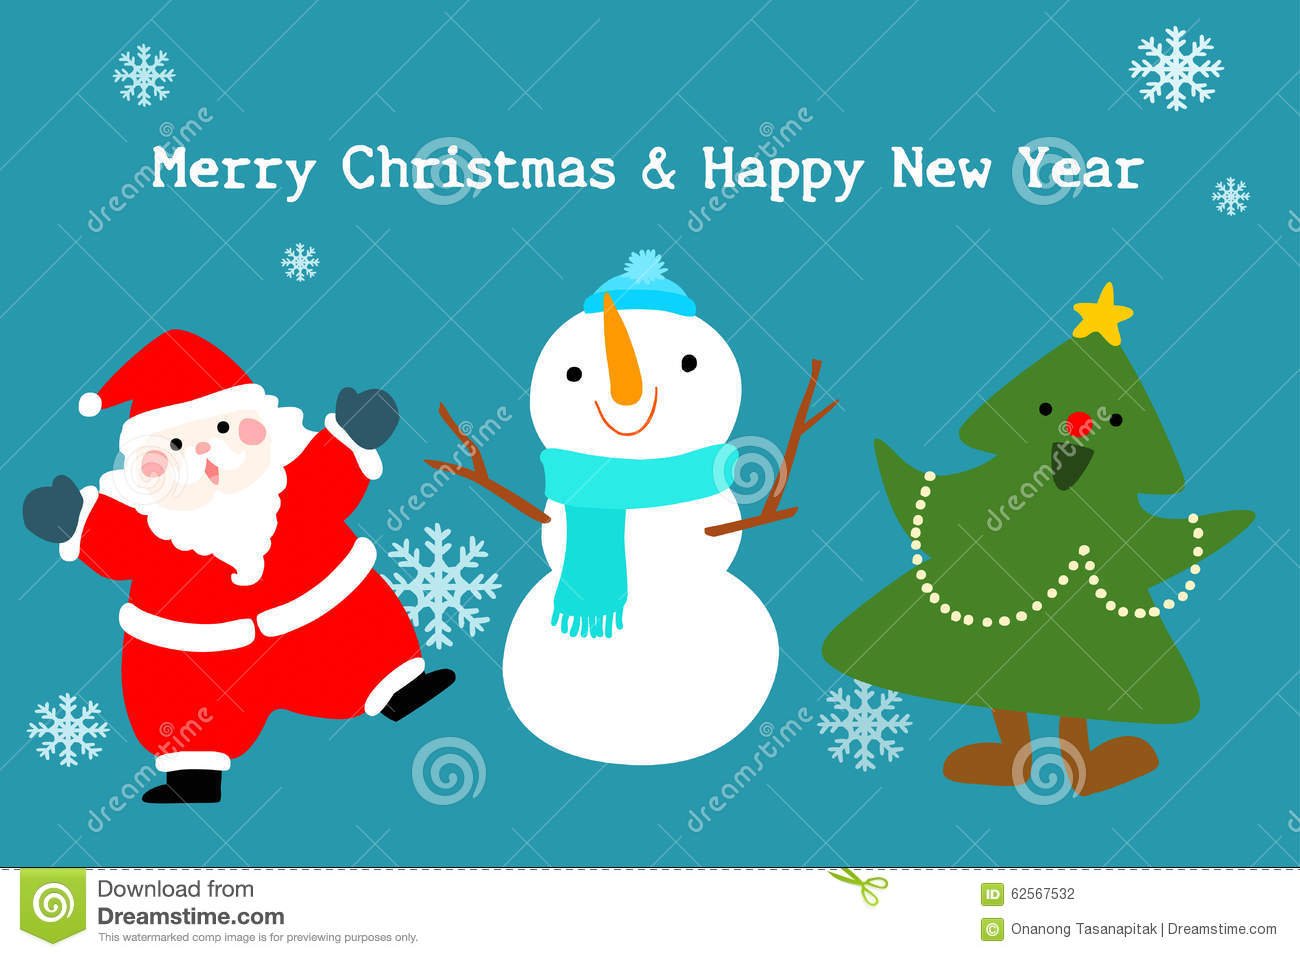 merry christmas and happy new year cute card